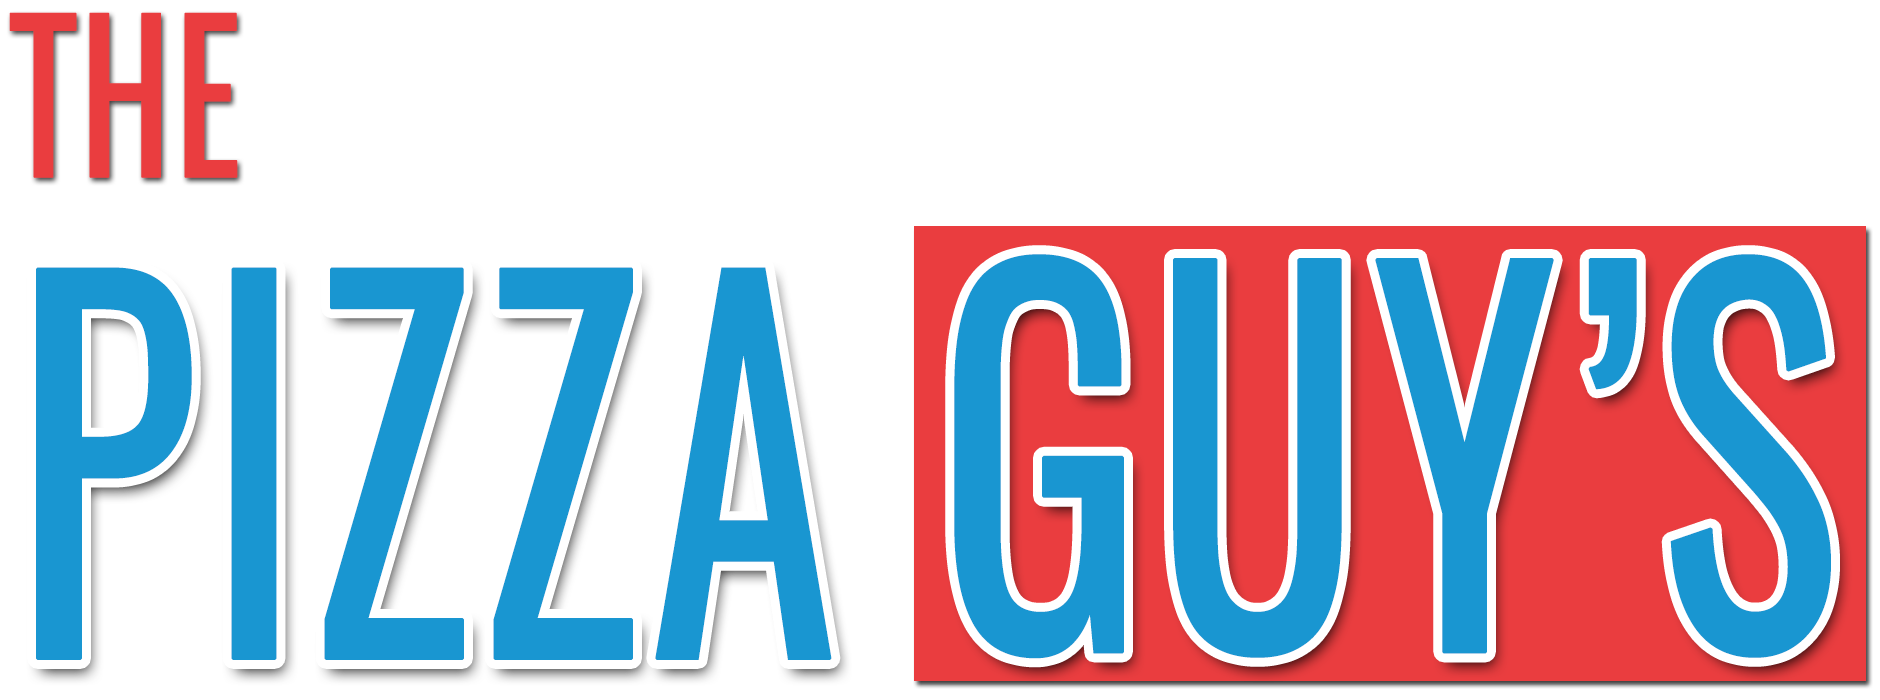 The Pizza Guys Takeaway Online Ordering In Hartlepool